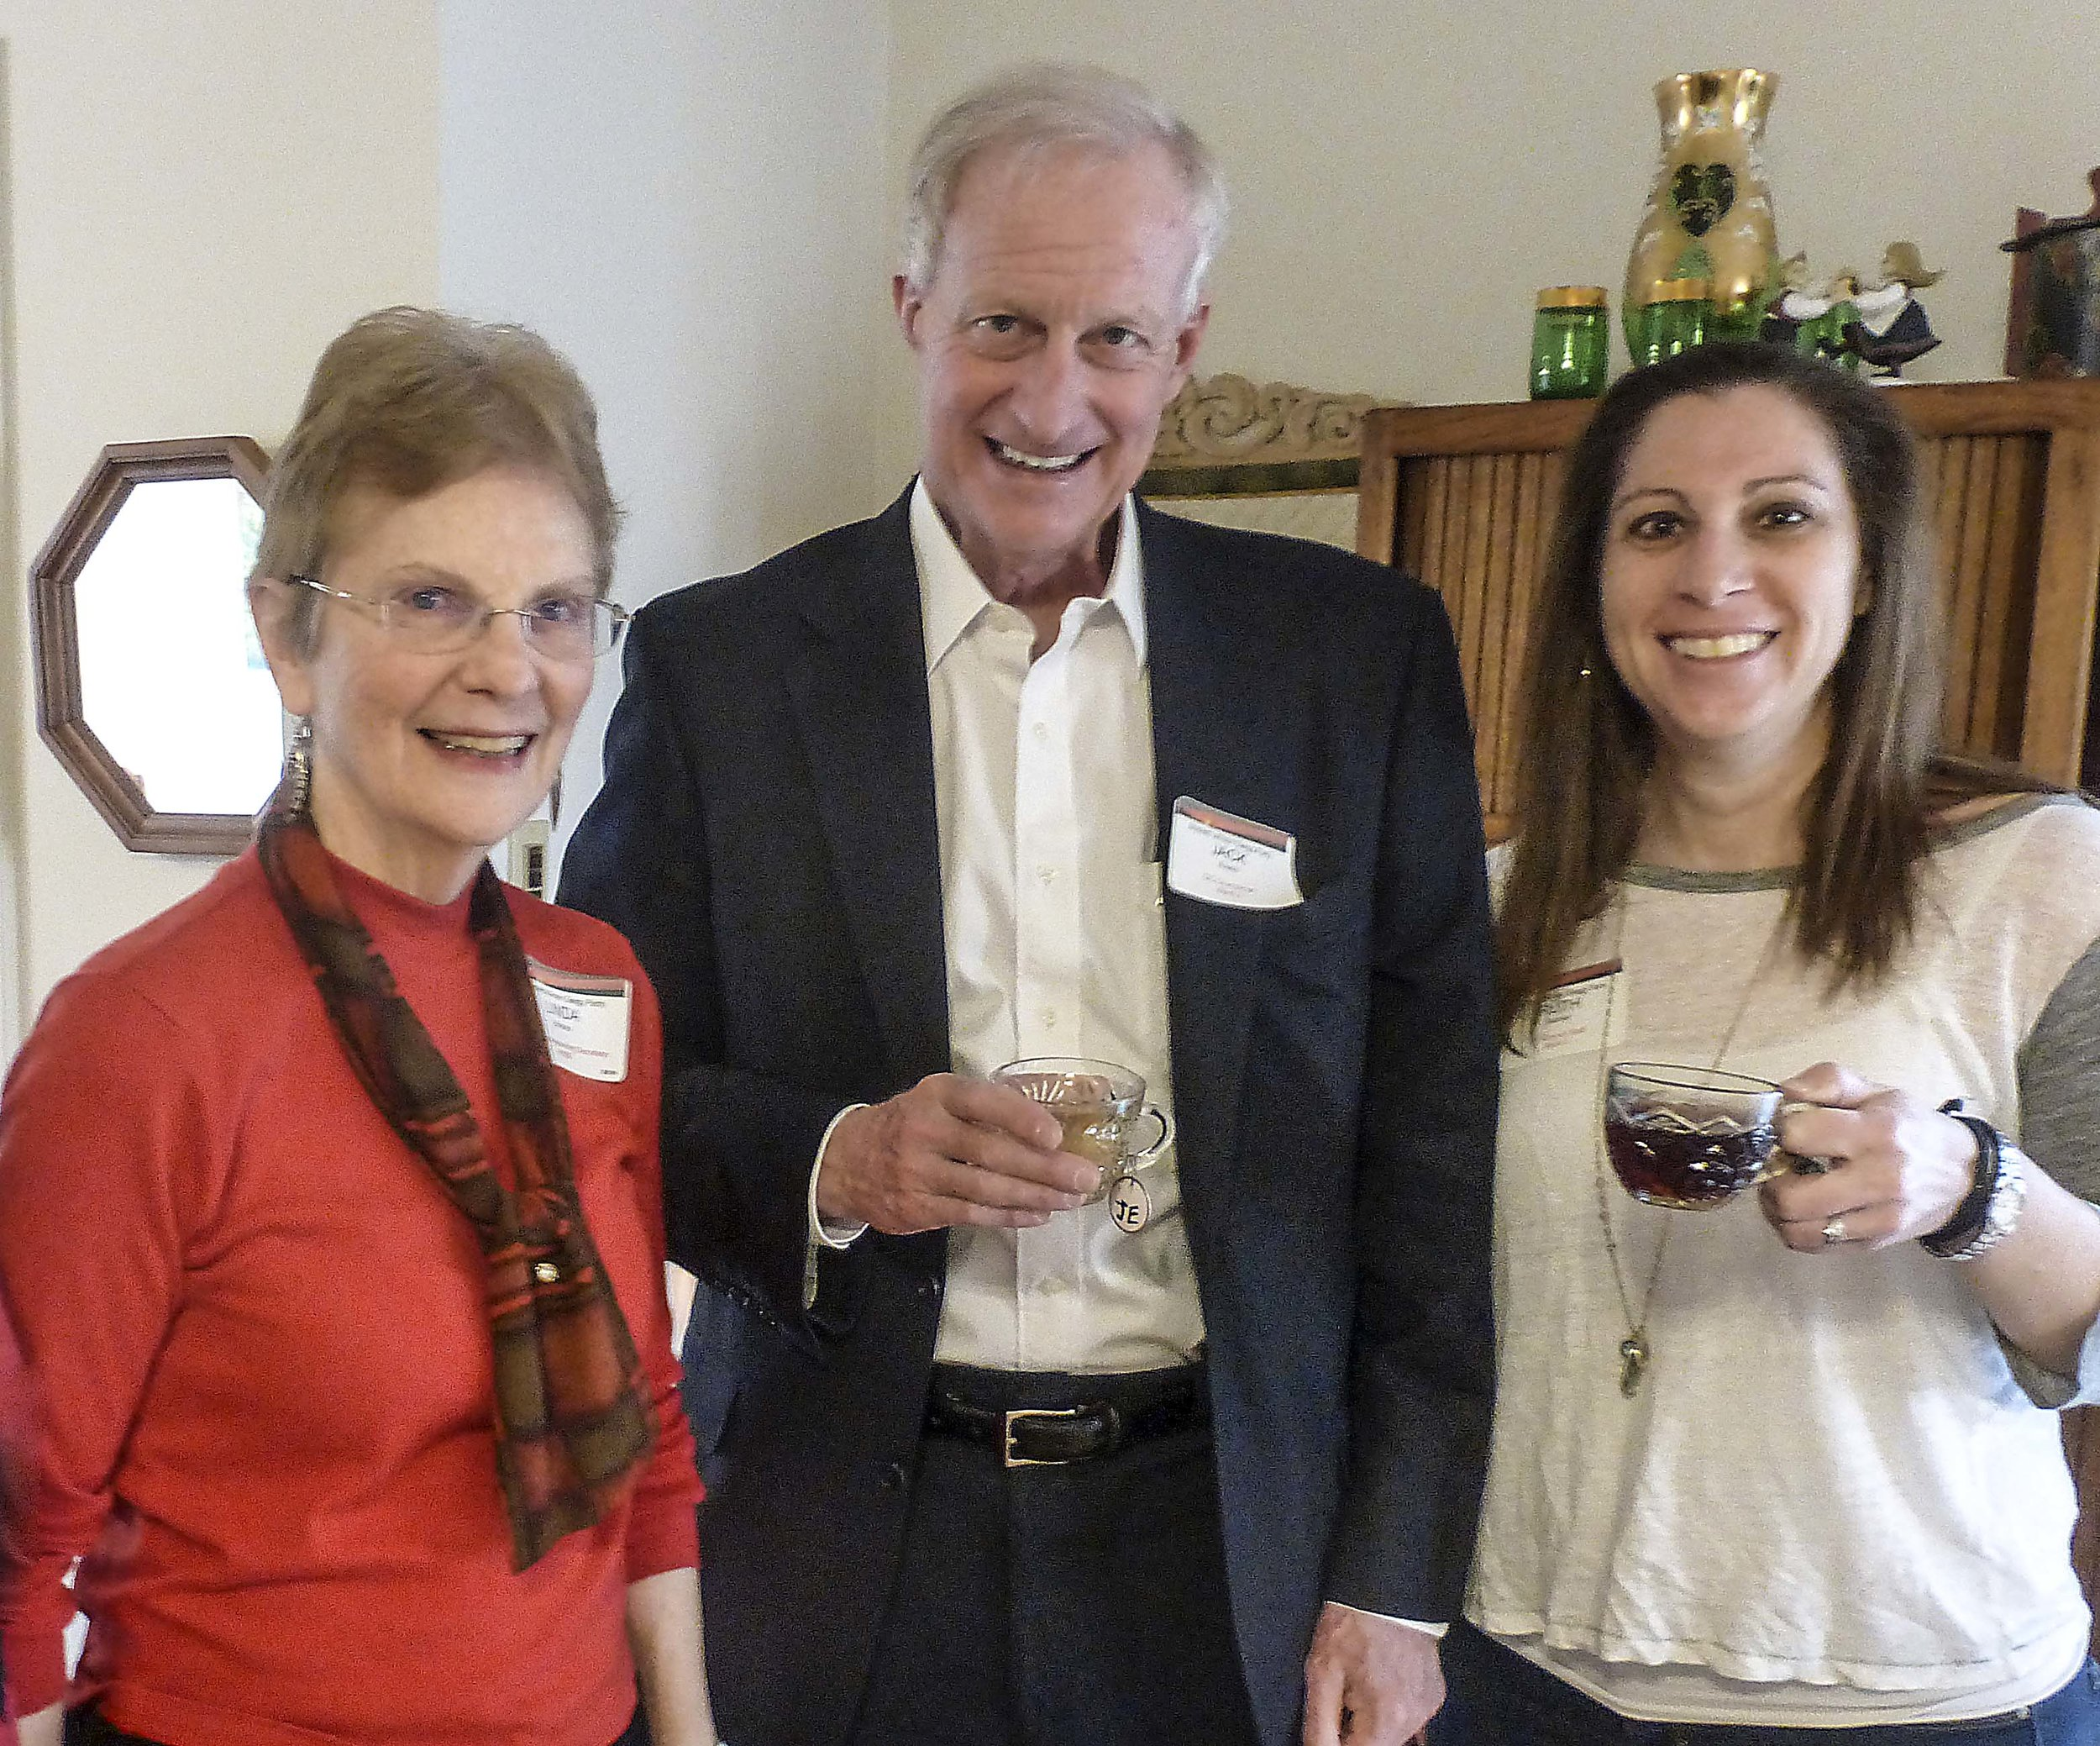 Jack Evans and Ruth Werner share a cup of cheer with host Linda Brooks. Photo by Ann Carper.